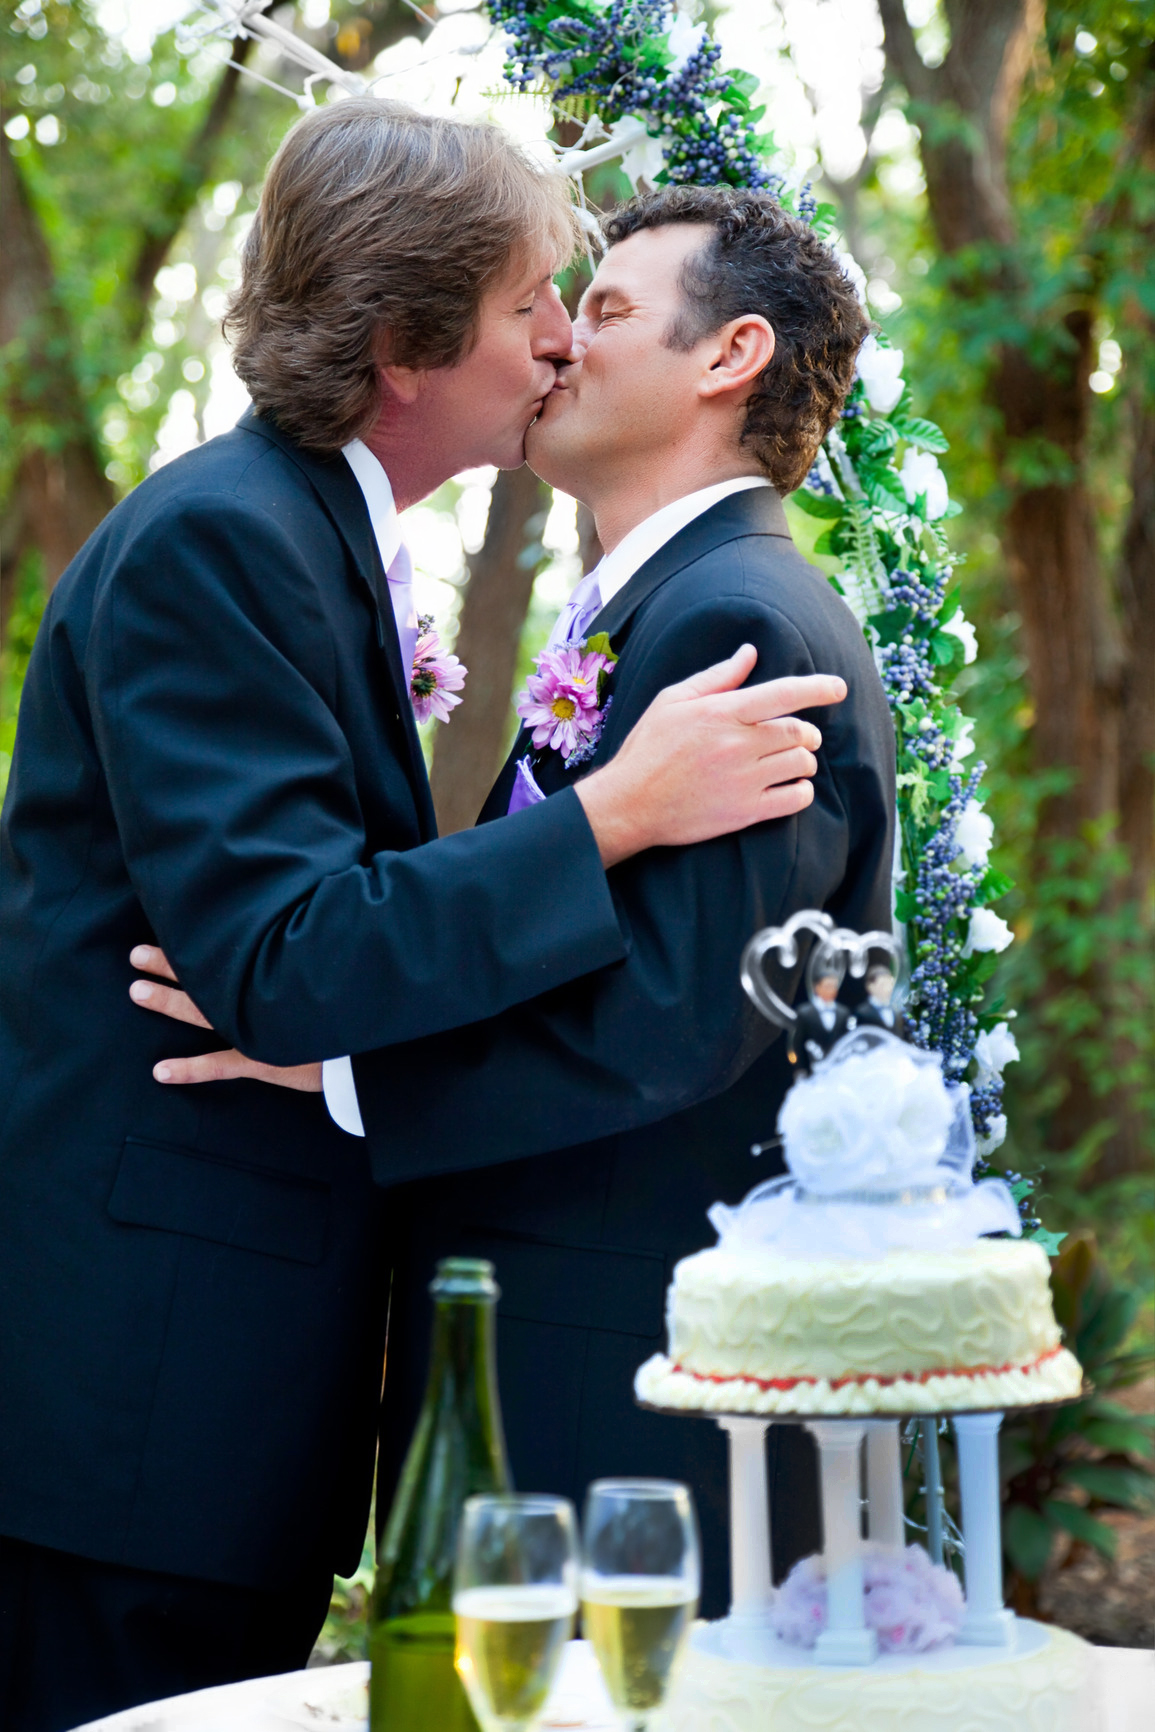 gay-weddings-photography-gay-wedding-romantic-kiss-m.jpg